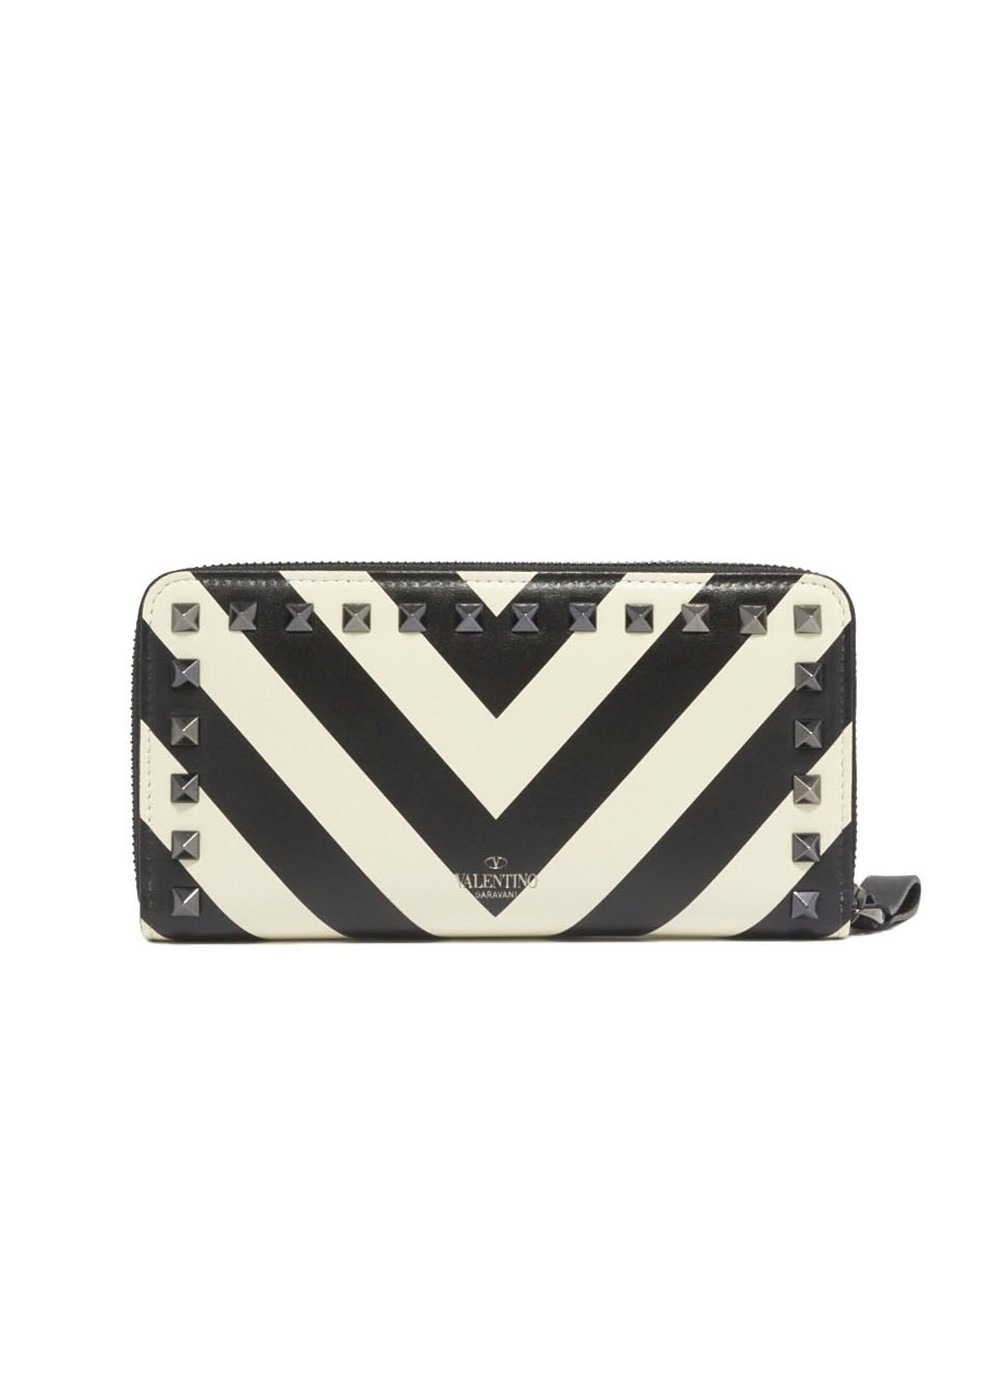 【最大32%OFF】ROCK STUDS ZIP WALLET|LIGHT IVORY/BLACK|レディース財布|VALENTINO_(TI)